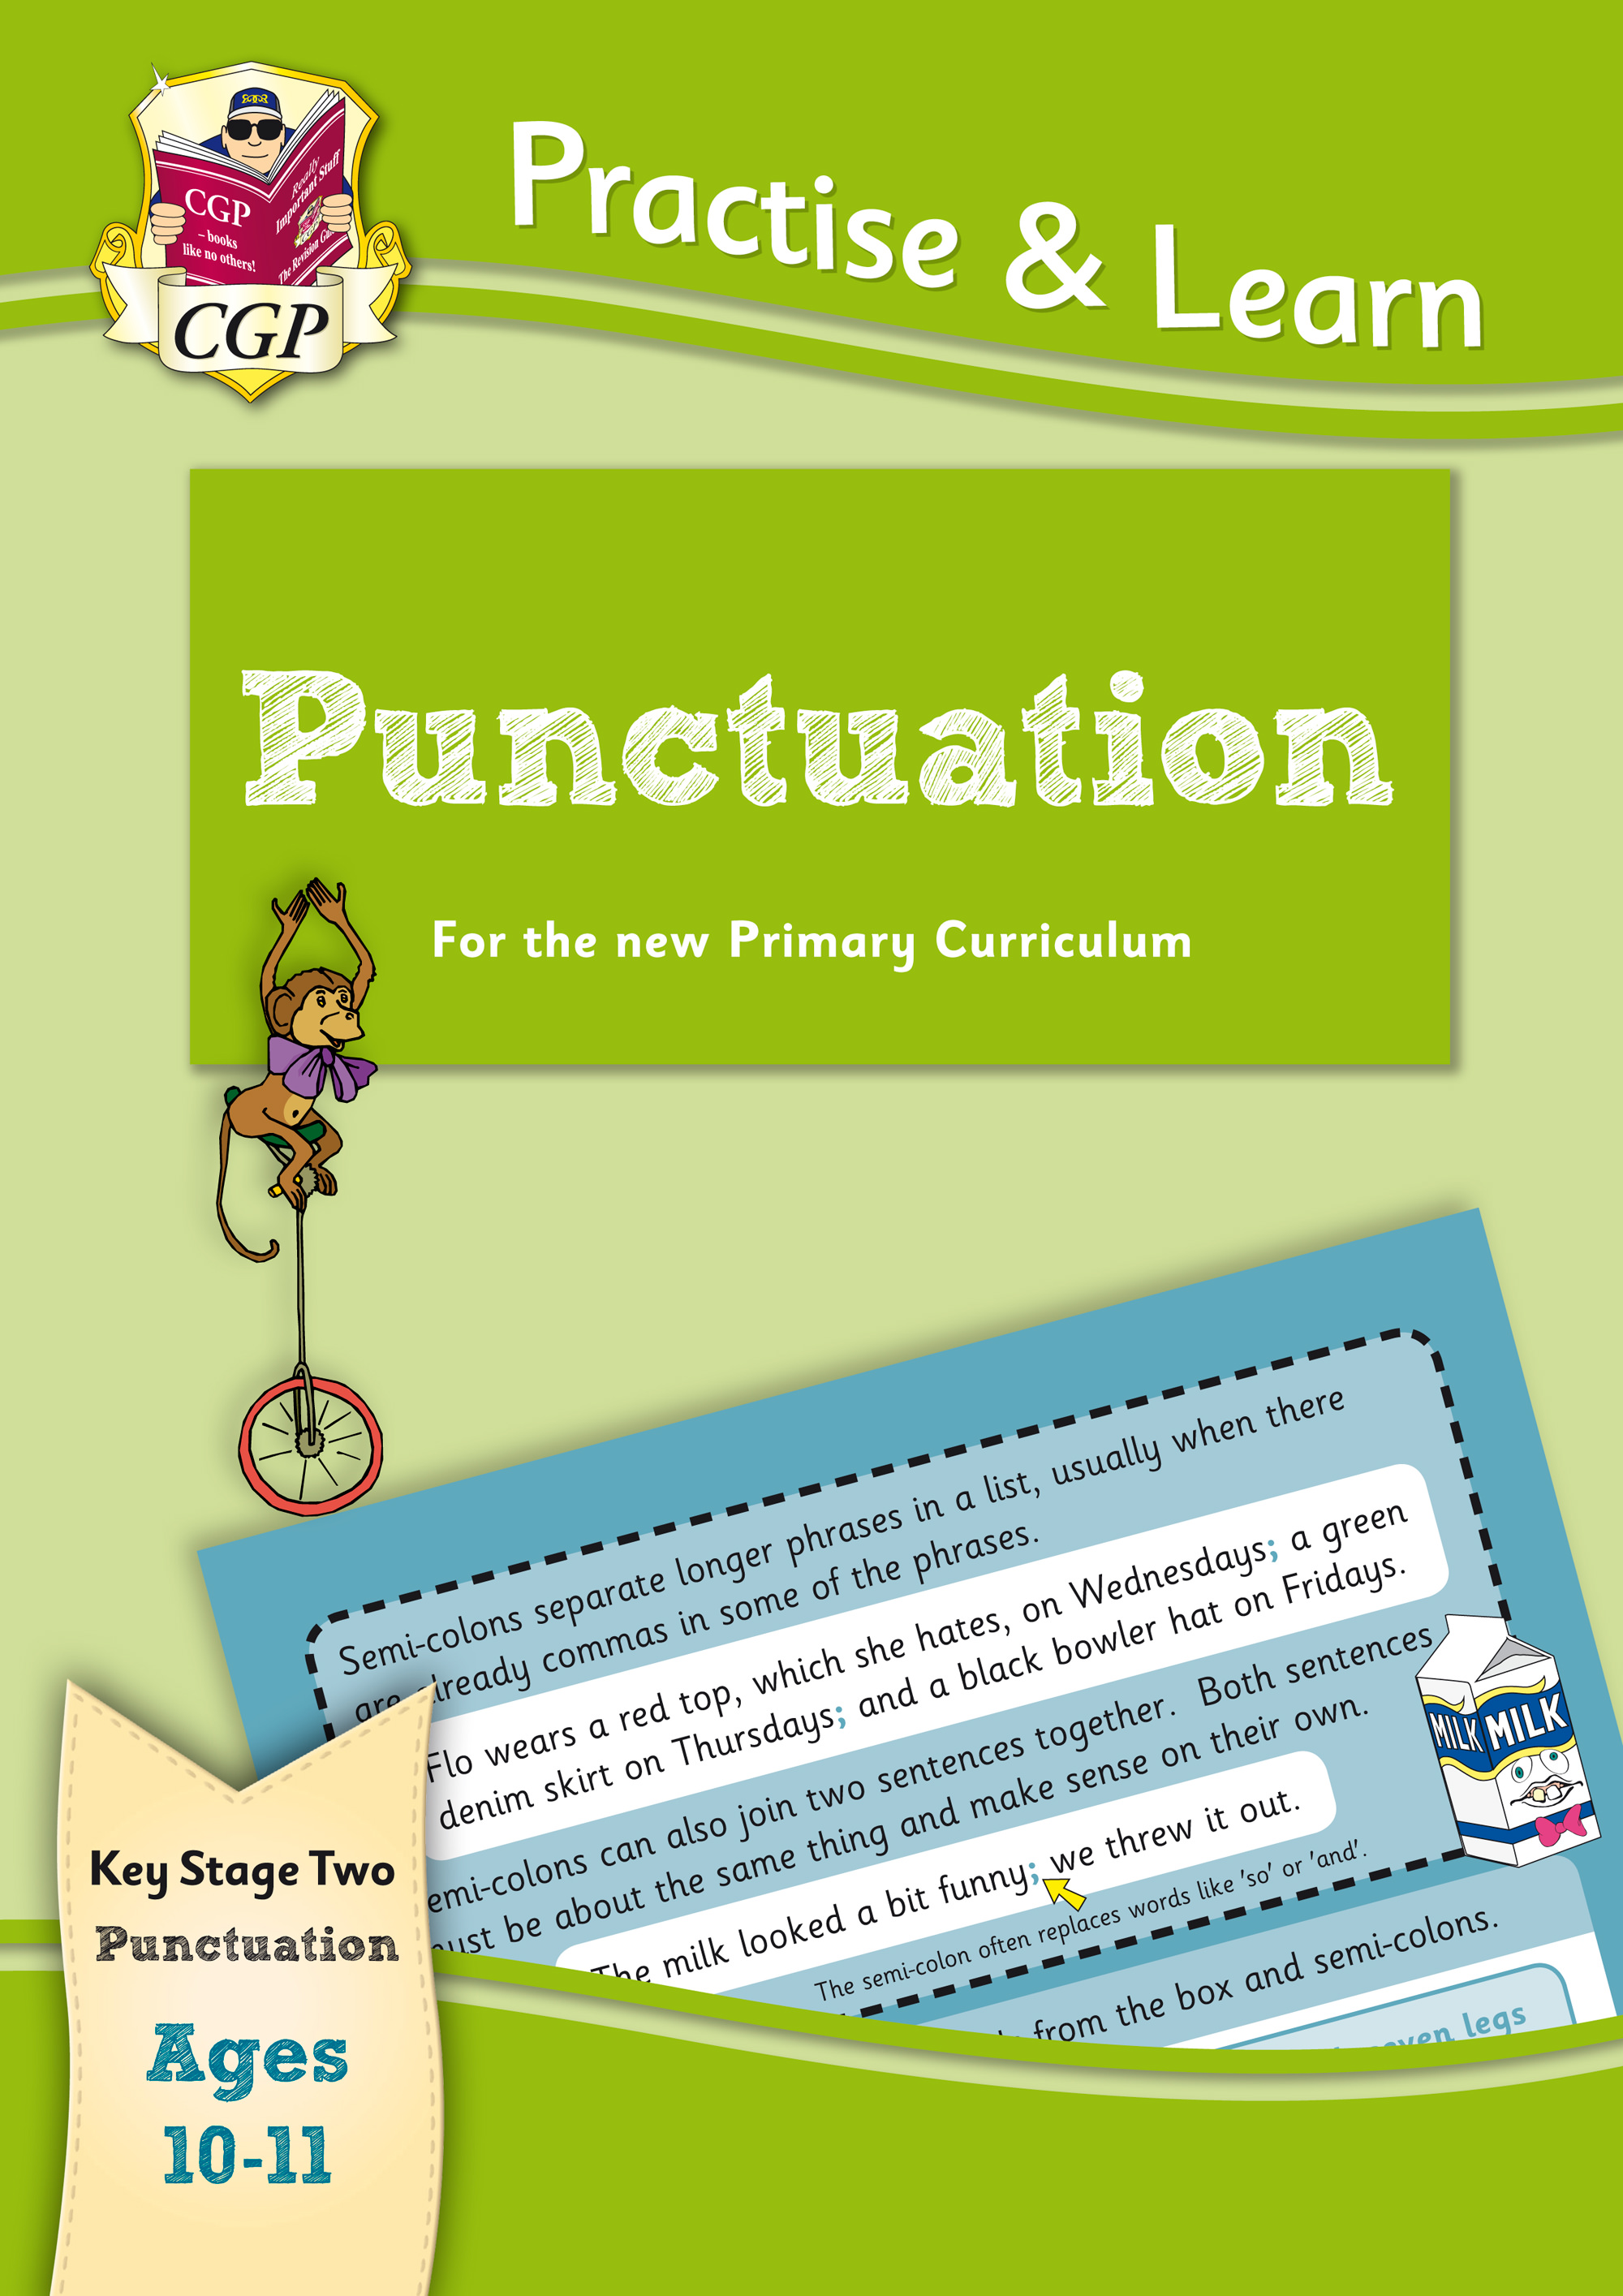 EP6P22 - New Practise & Learn: Punctuation for Ages 10-11